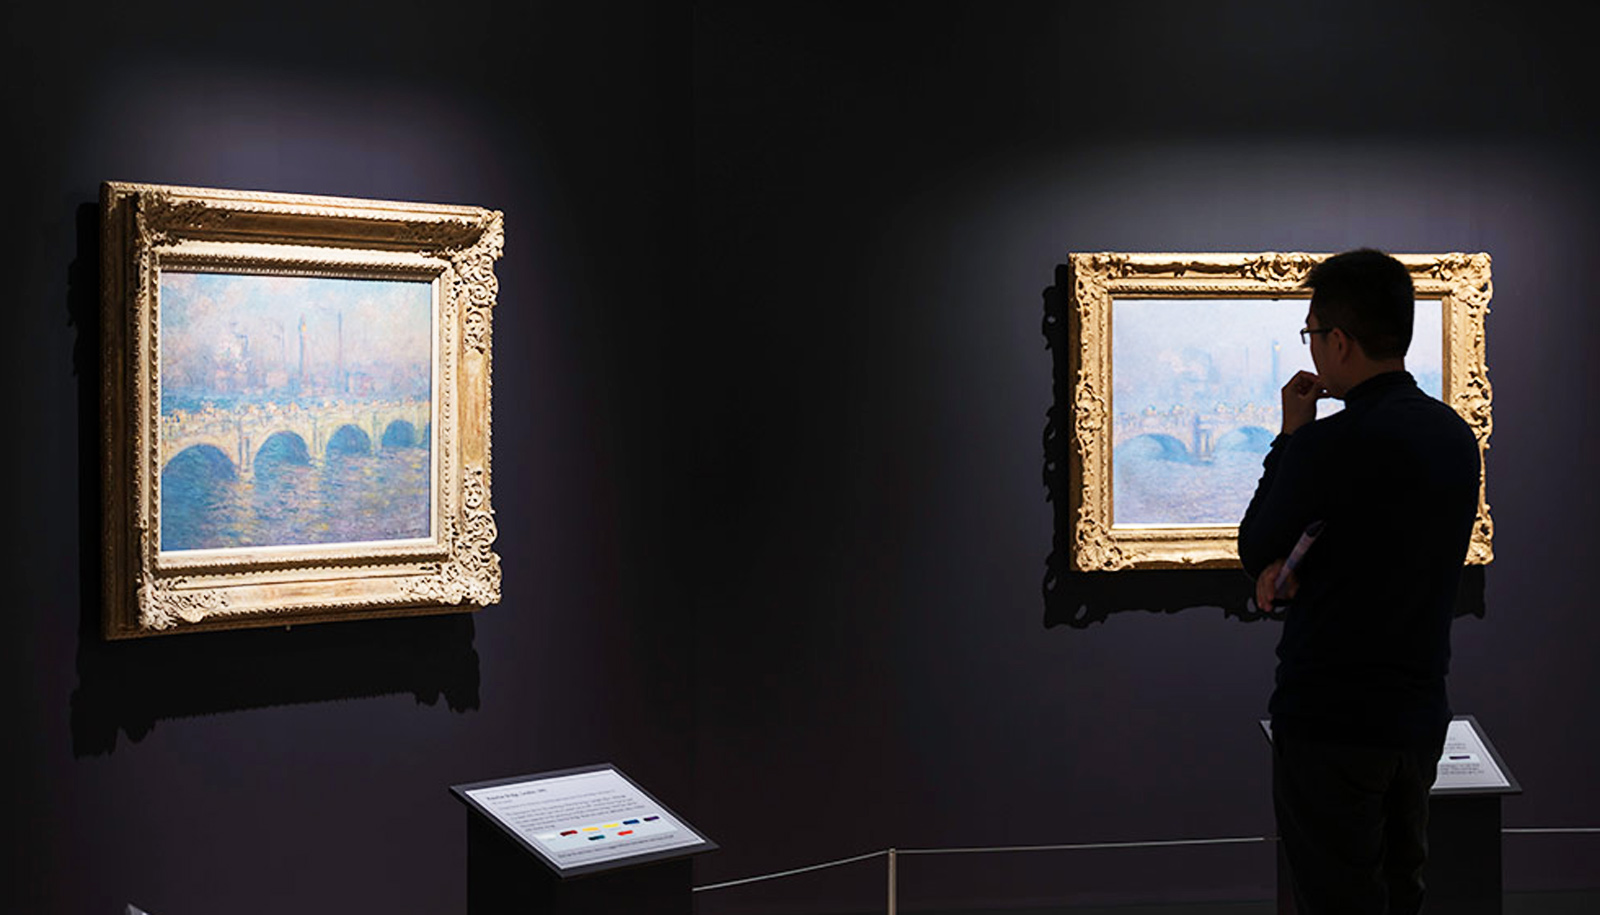 How Monet's paintings 'trick' our eyes - Futurity